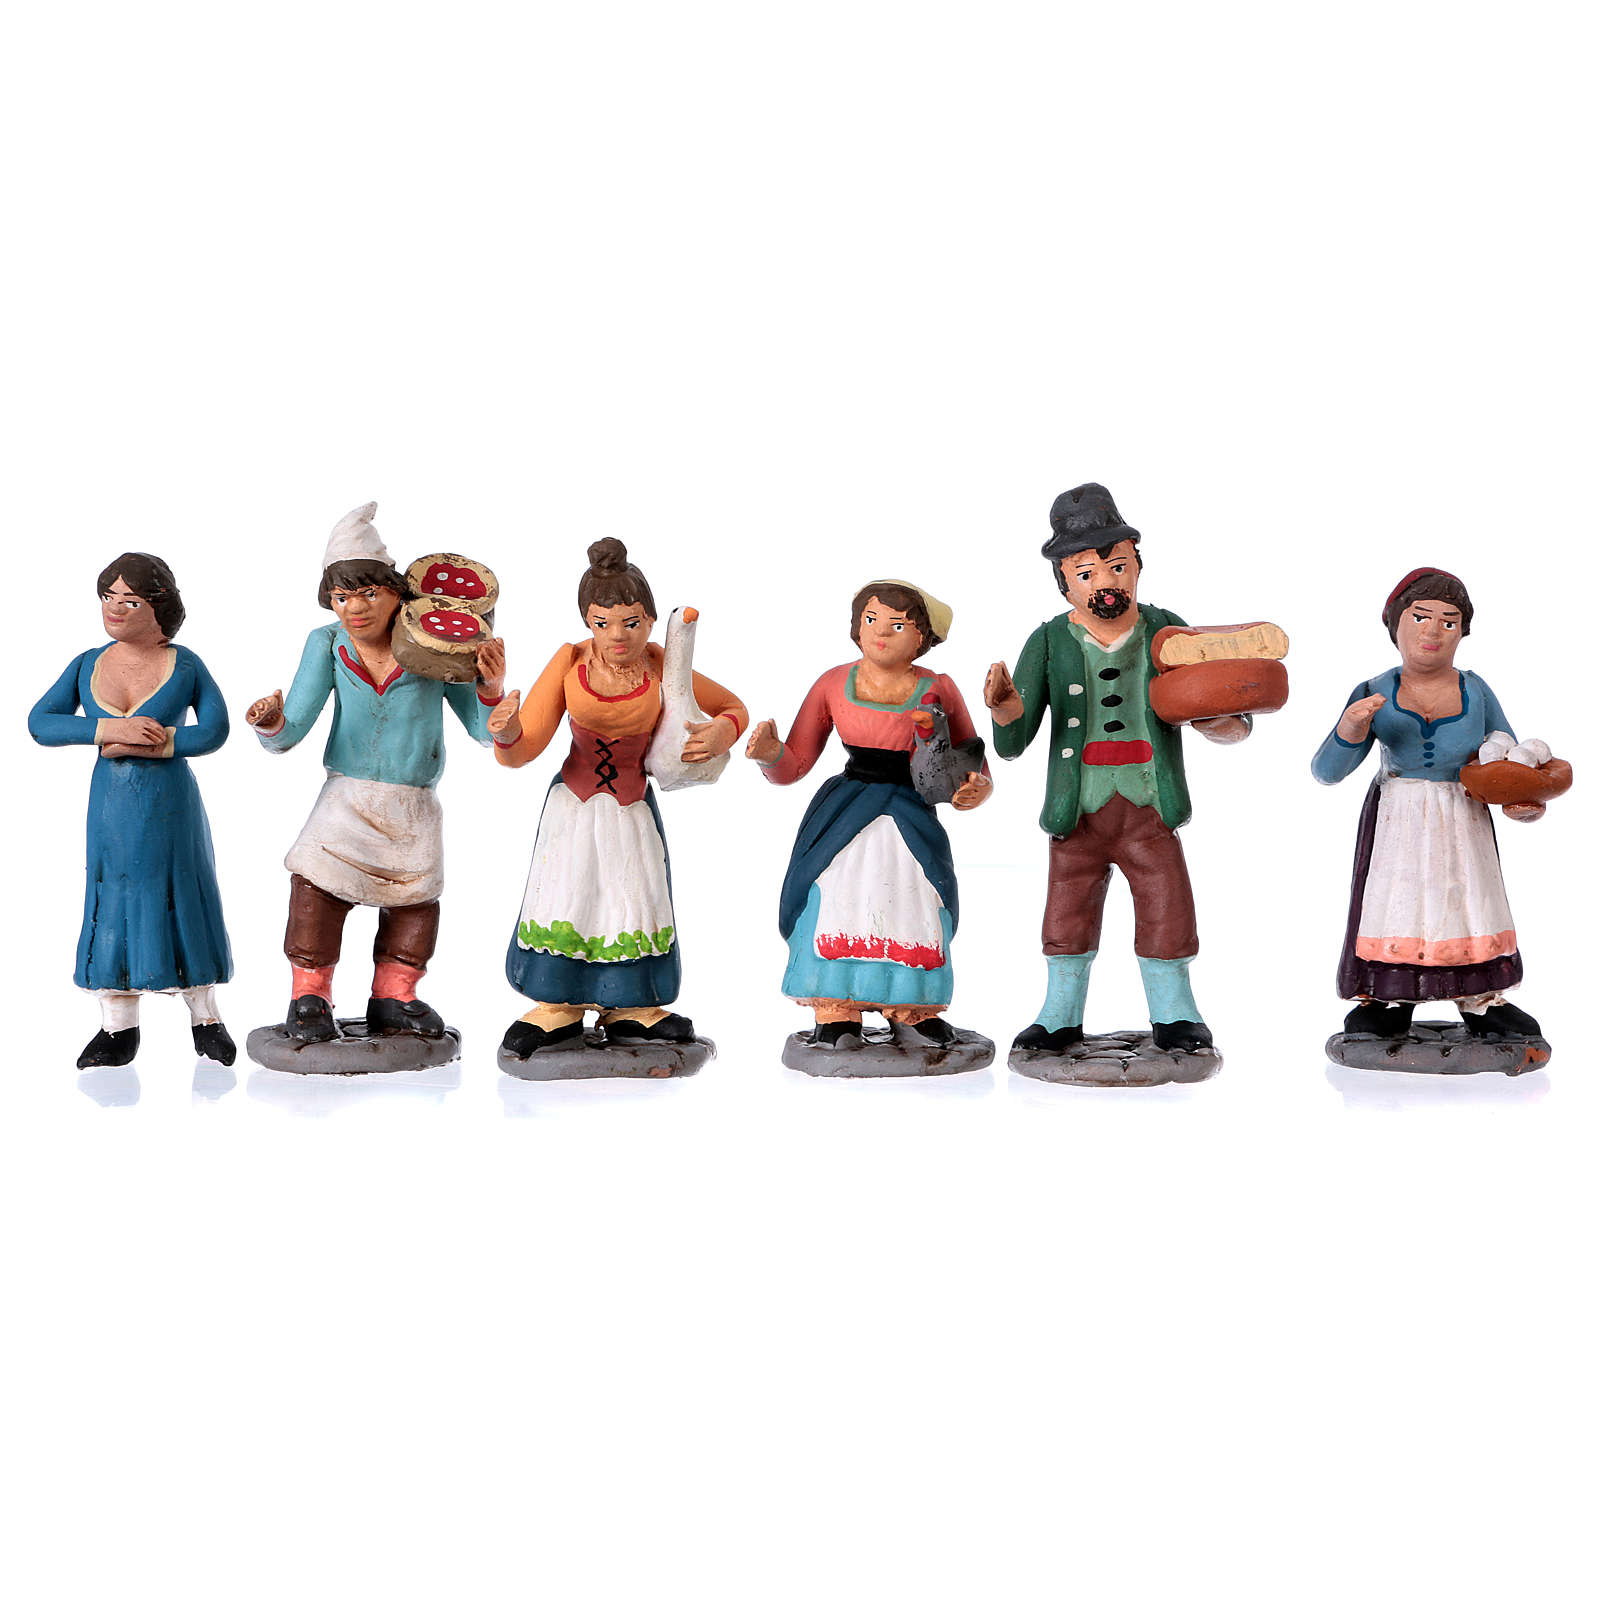 Figurines for Neapolitan Nativity Scene 36 pieces real height 10 cm 4